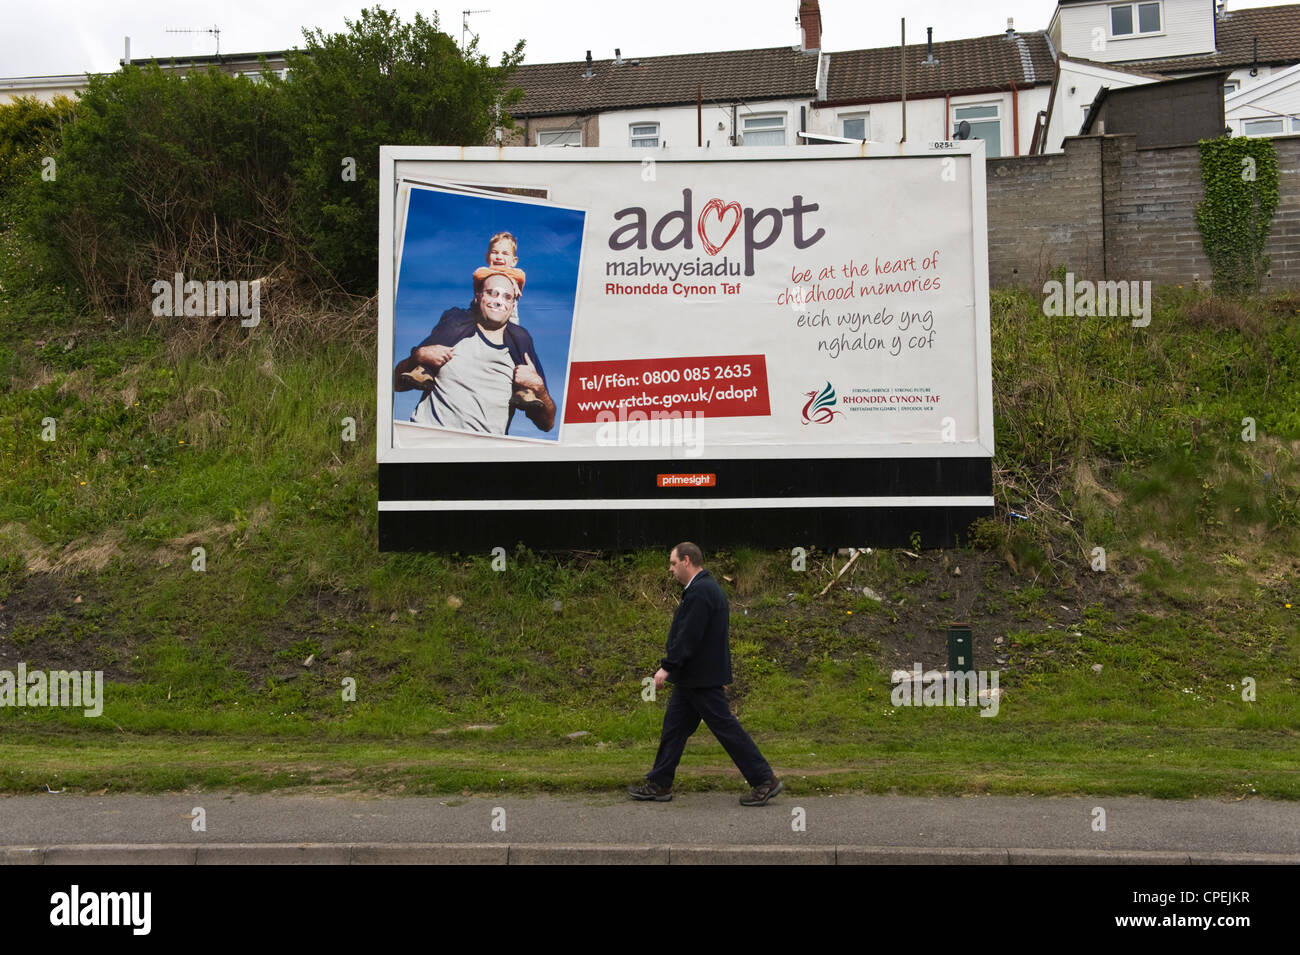 primesight billboard site in Merthyr Tydfil South Wales UK for adoption services by Rhondda Cynon Taf Council - Stock Image